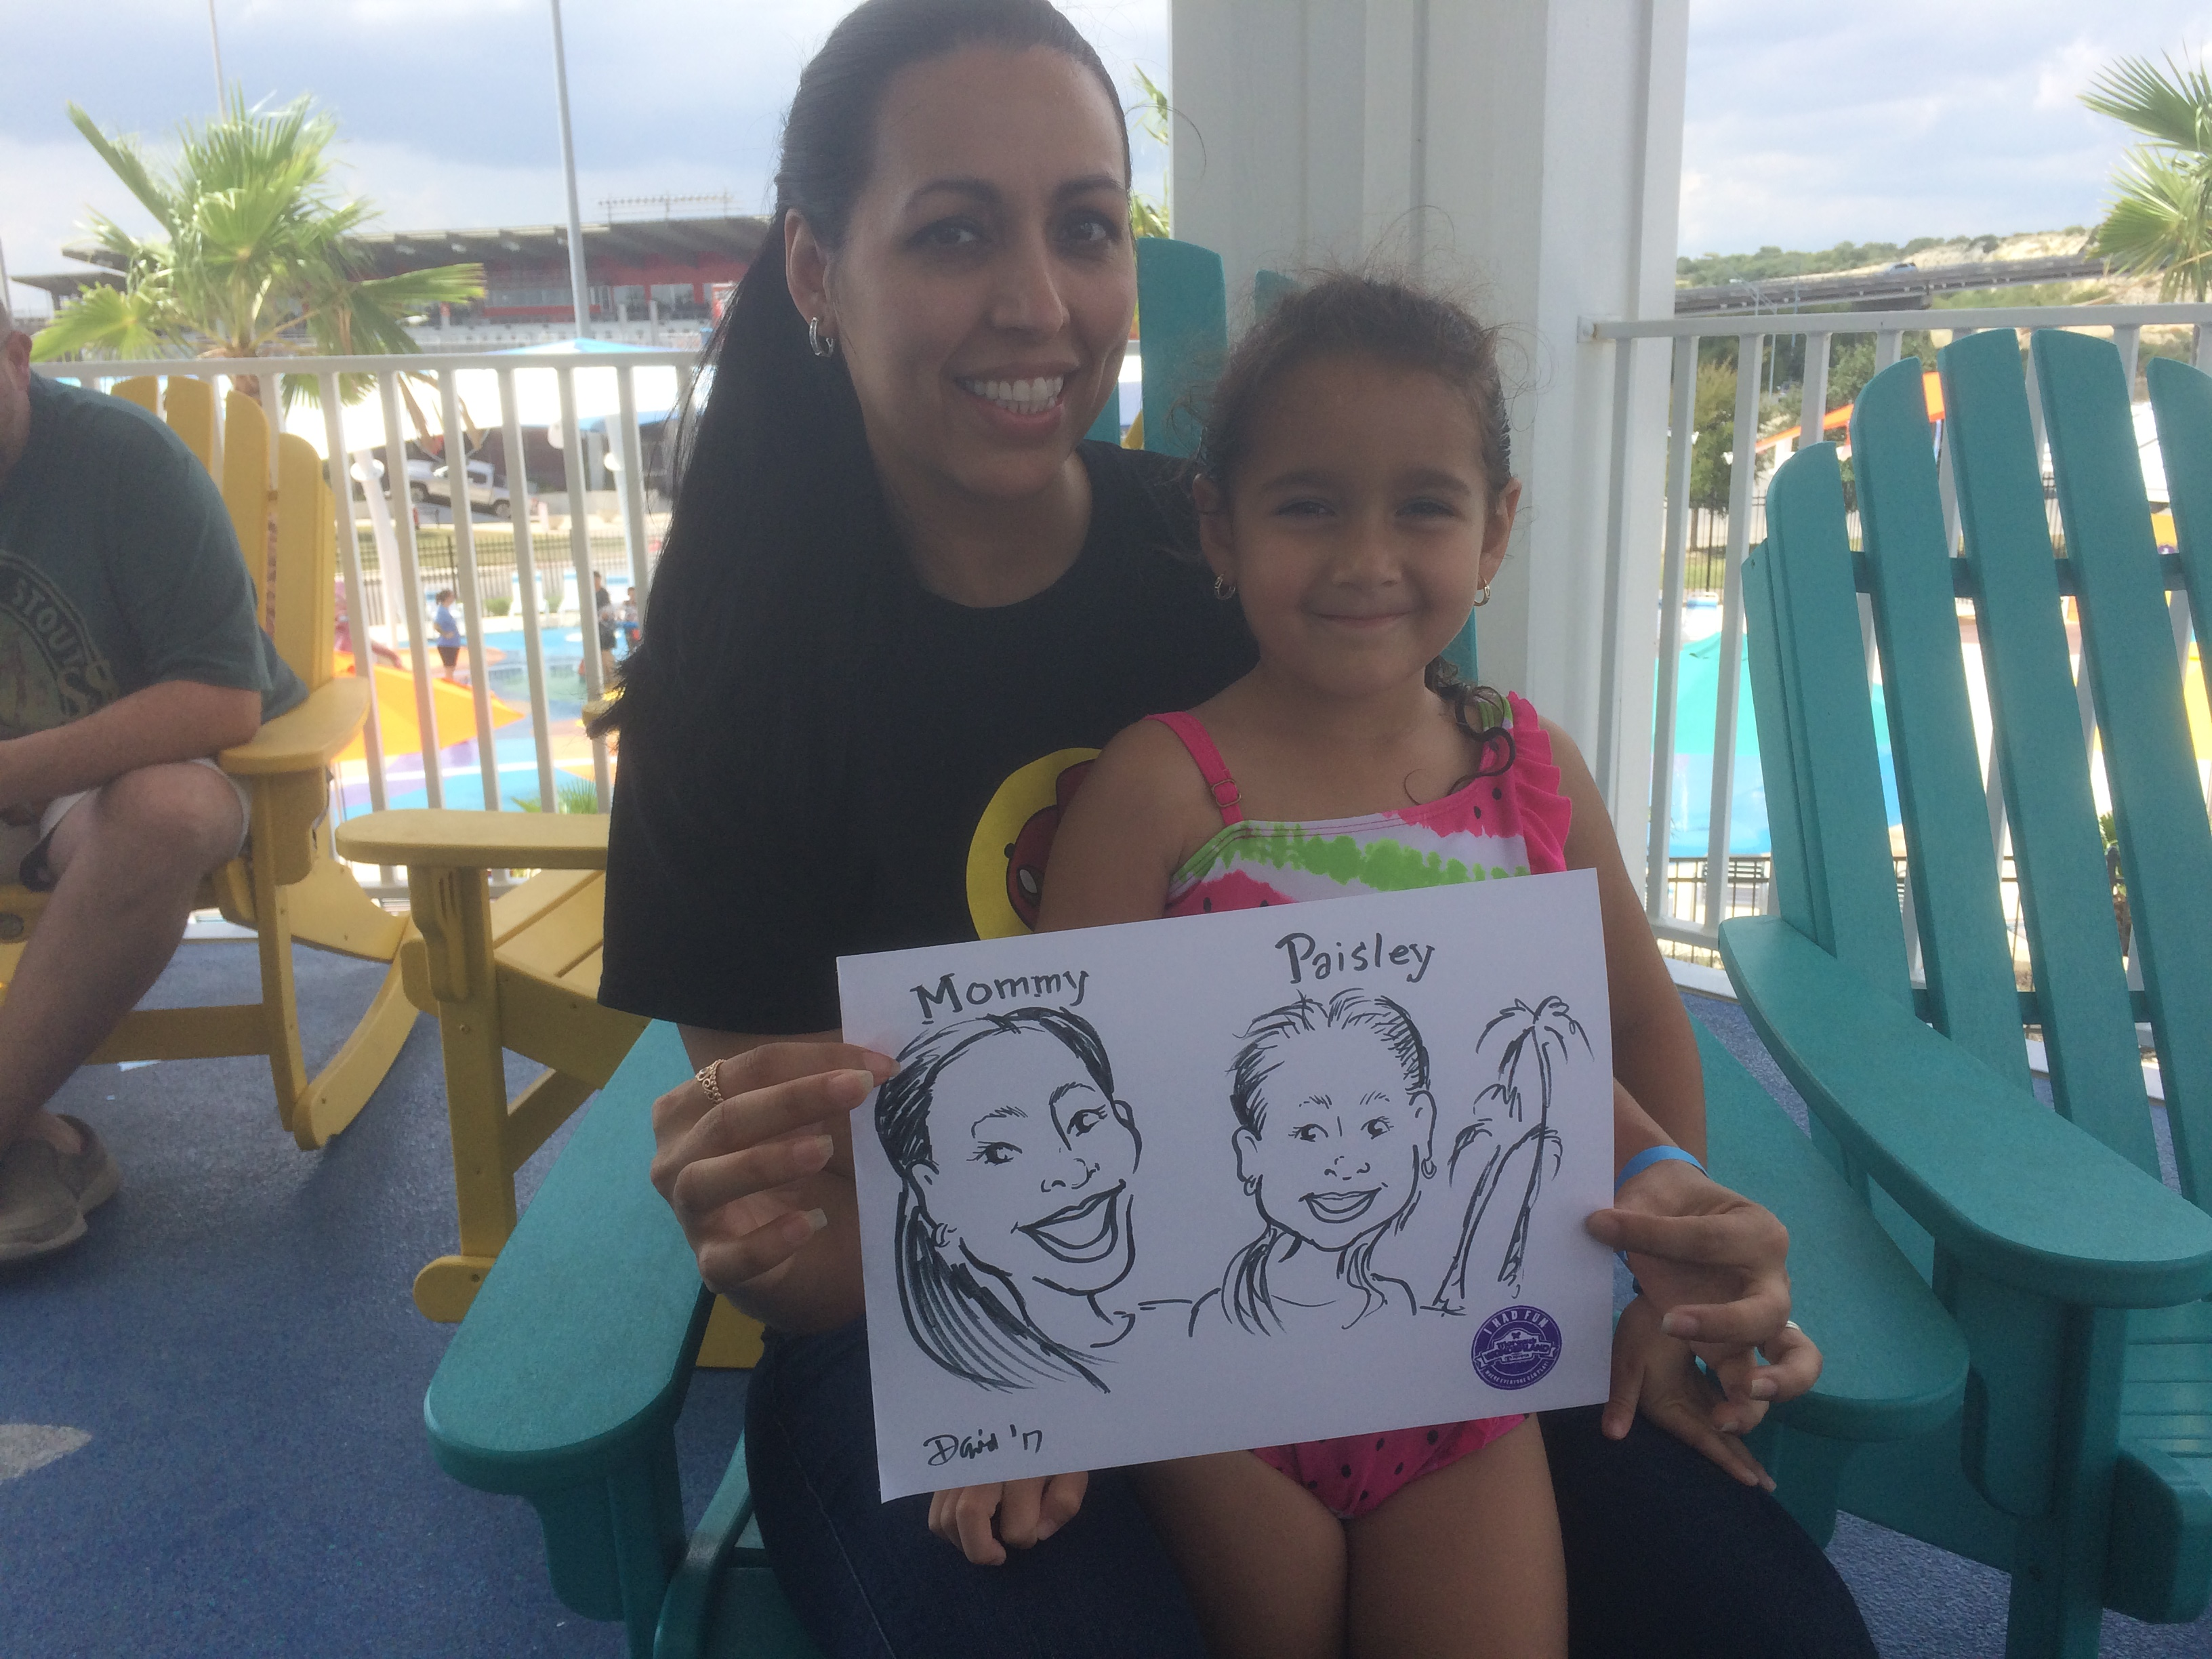 A mom and daughter enjoy a fun cartoon caricature by cartoonist David Pitts